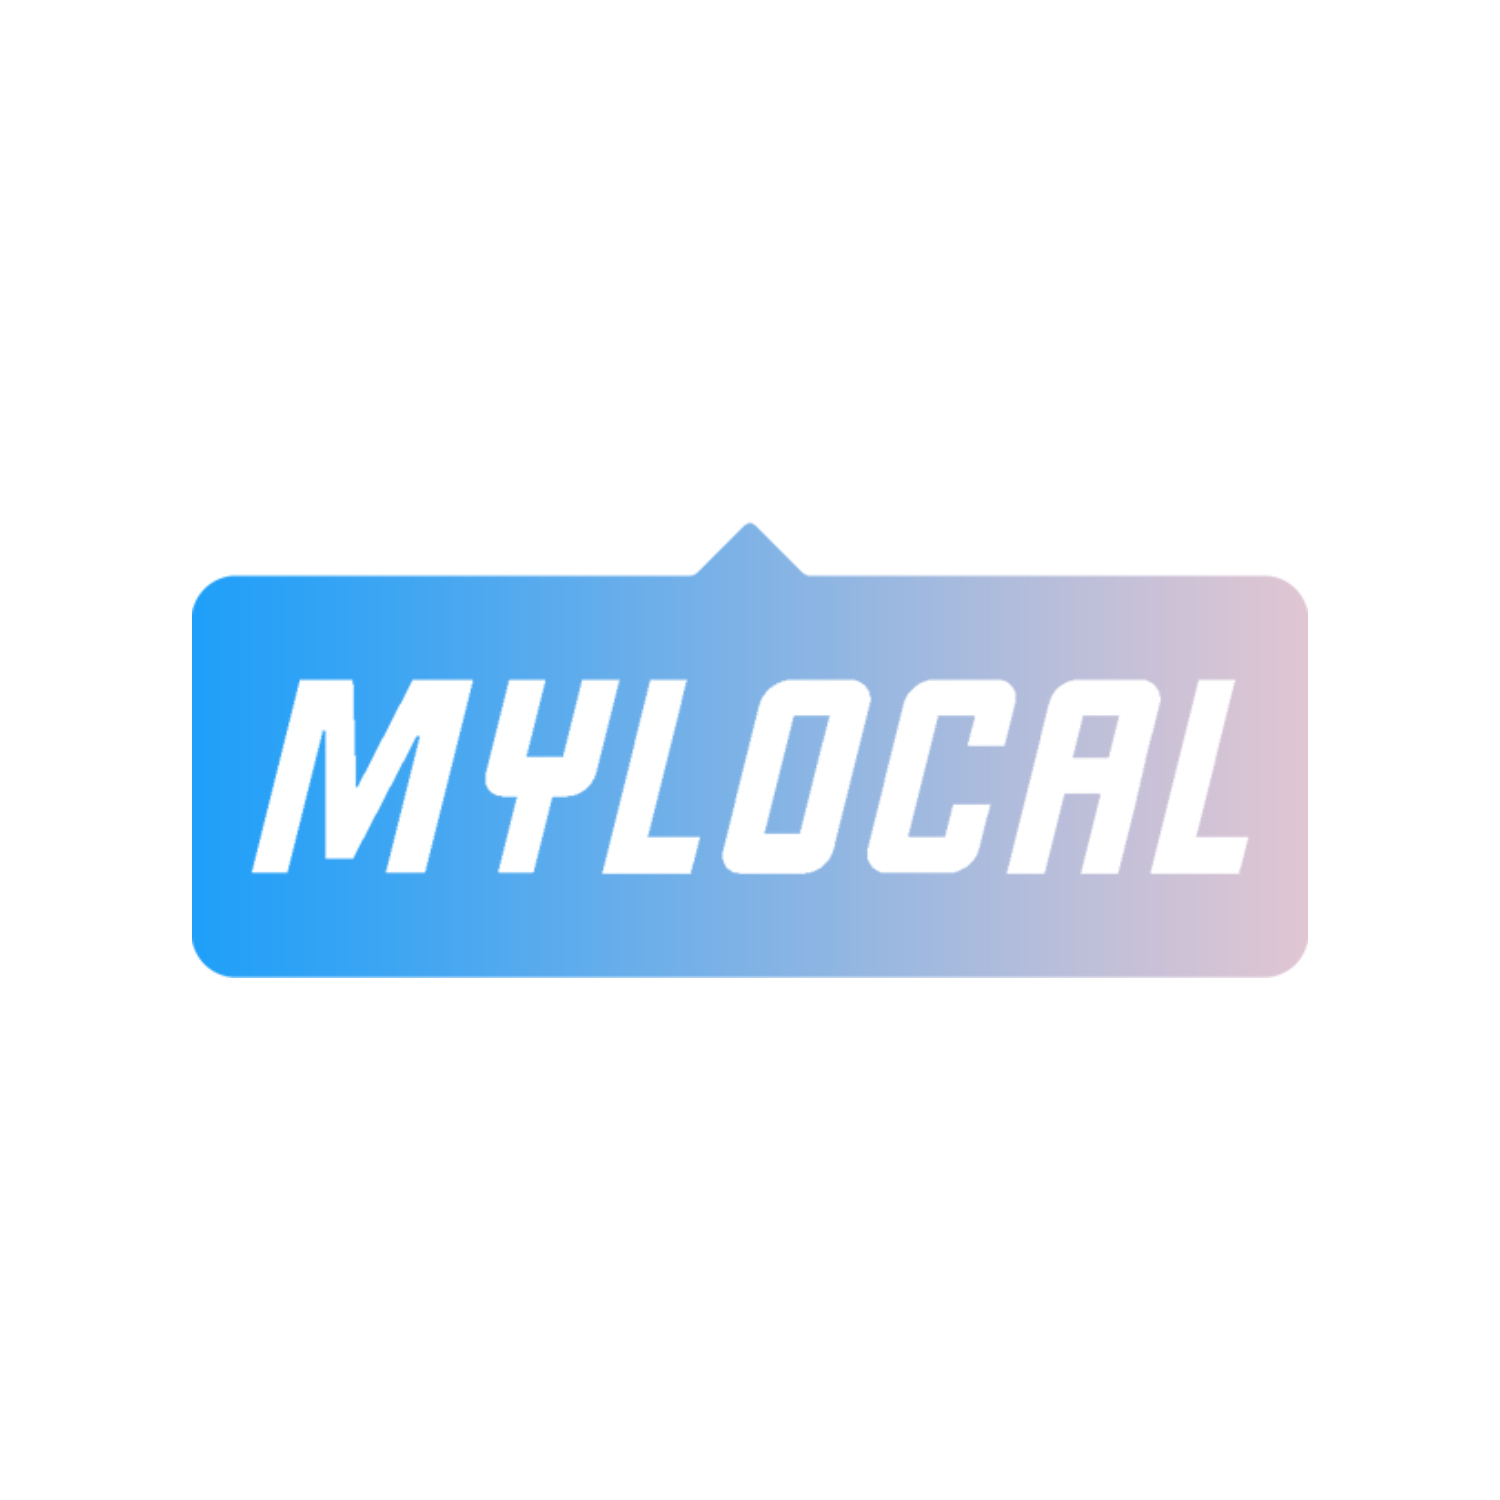 MY LOCAL LIVE AT THE MOREAN IS HERE! - Scroll Down to Sign Up for a SZN 4 CREW!